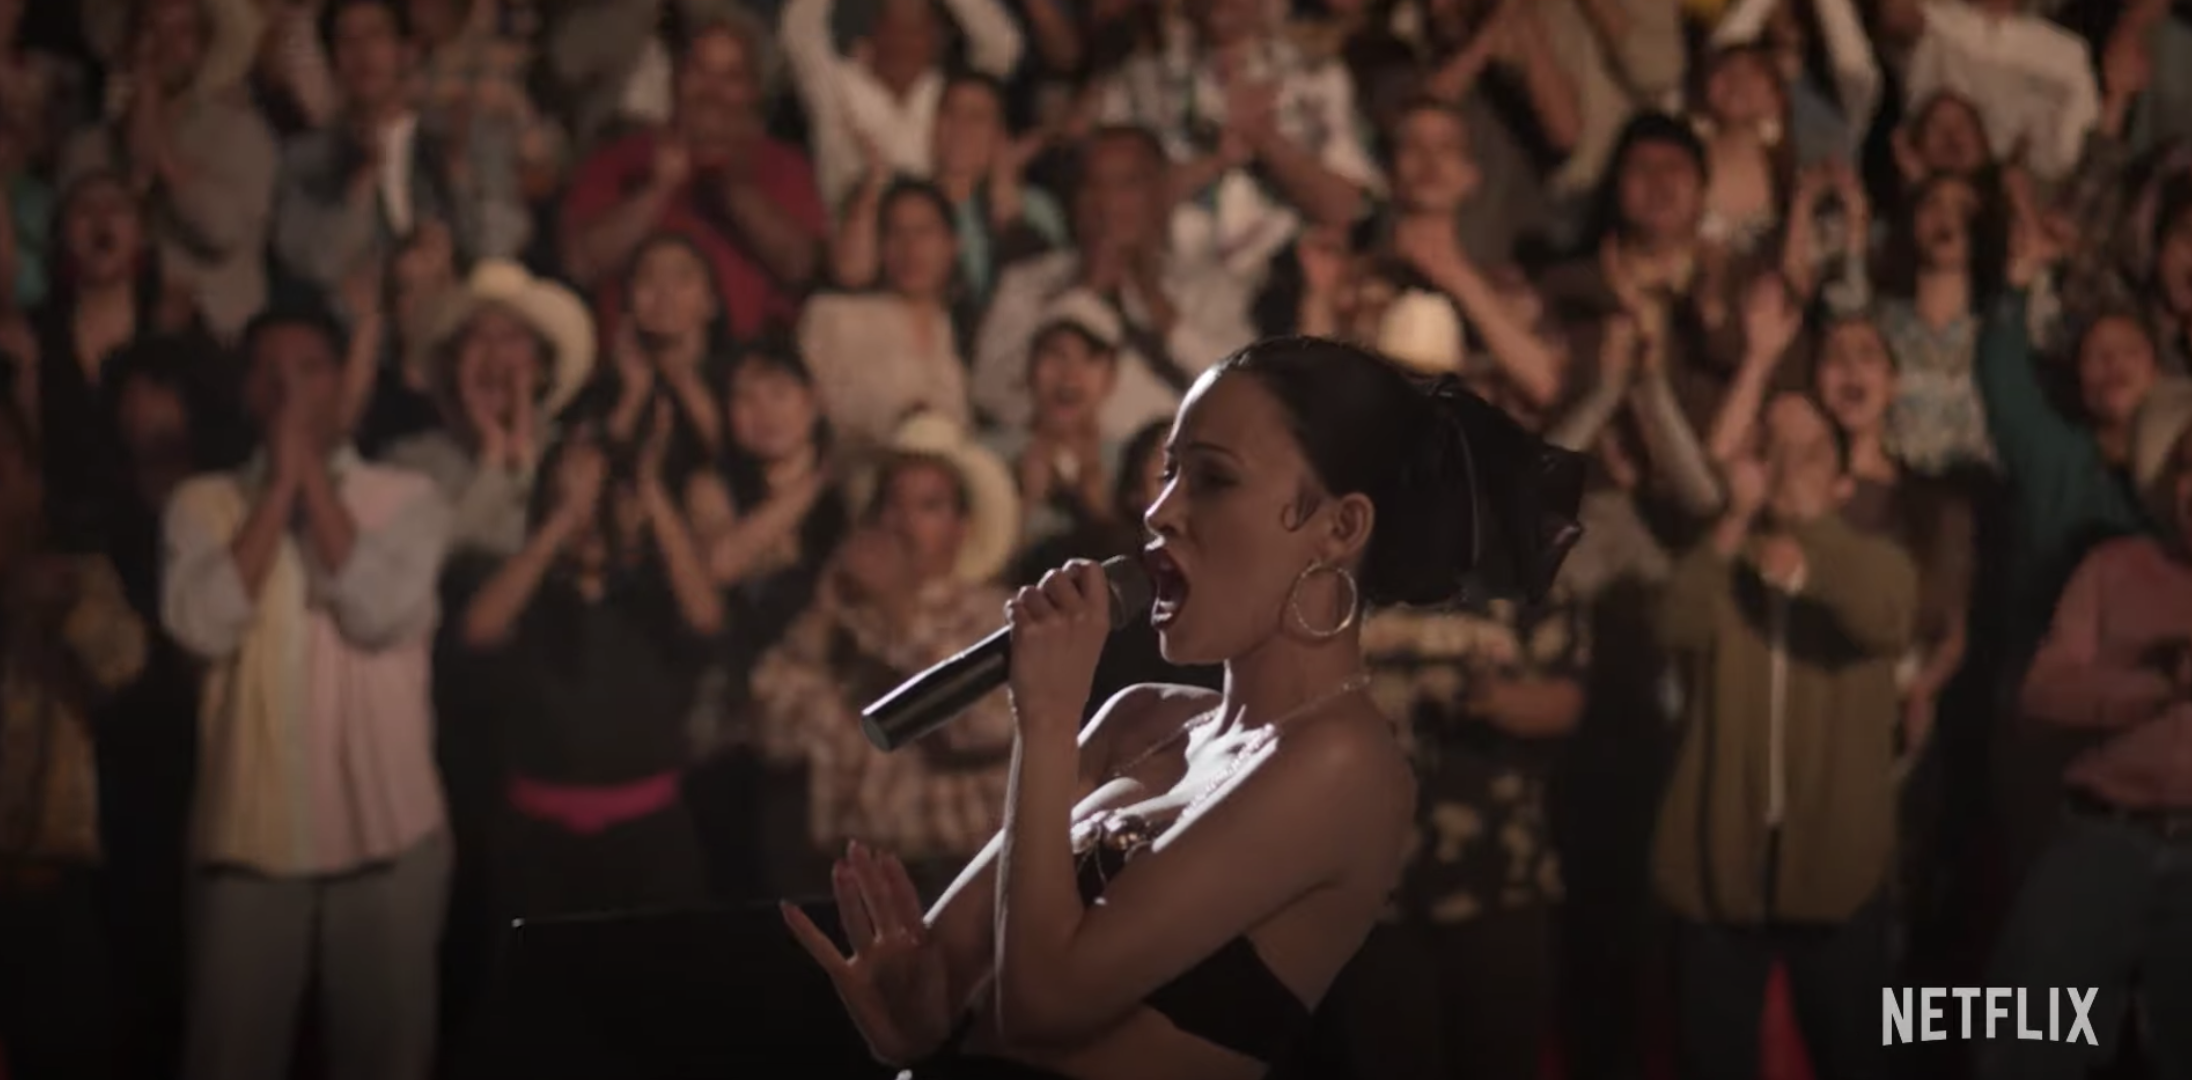 Christian Serratos as Selena performing in front of a large crowd